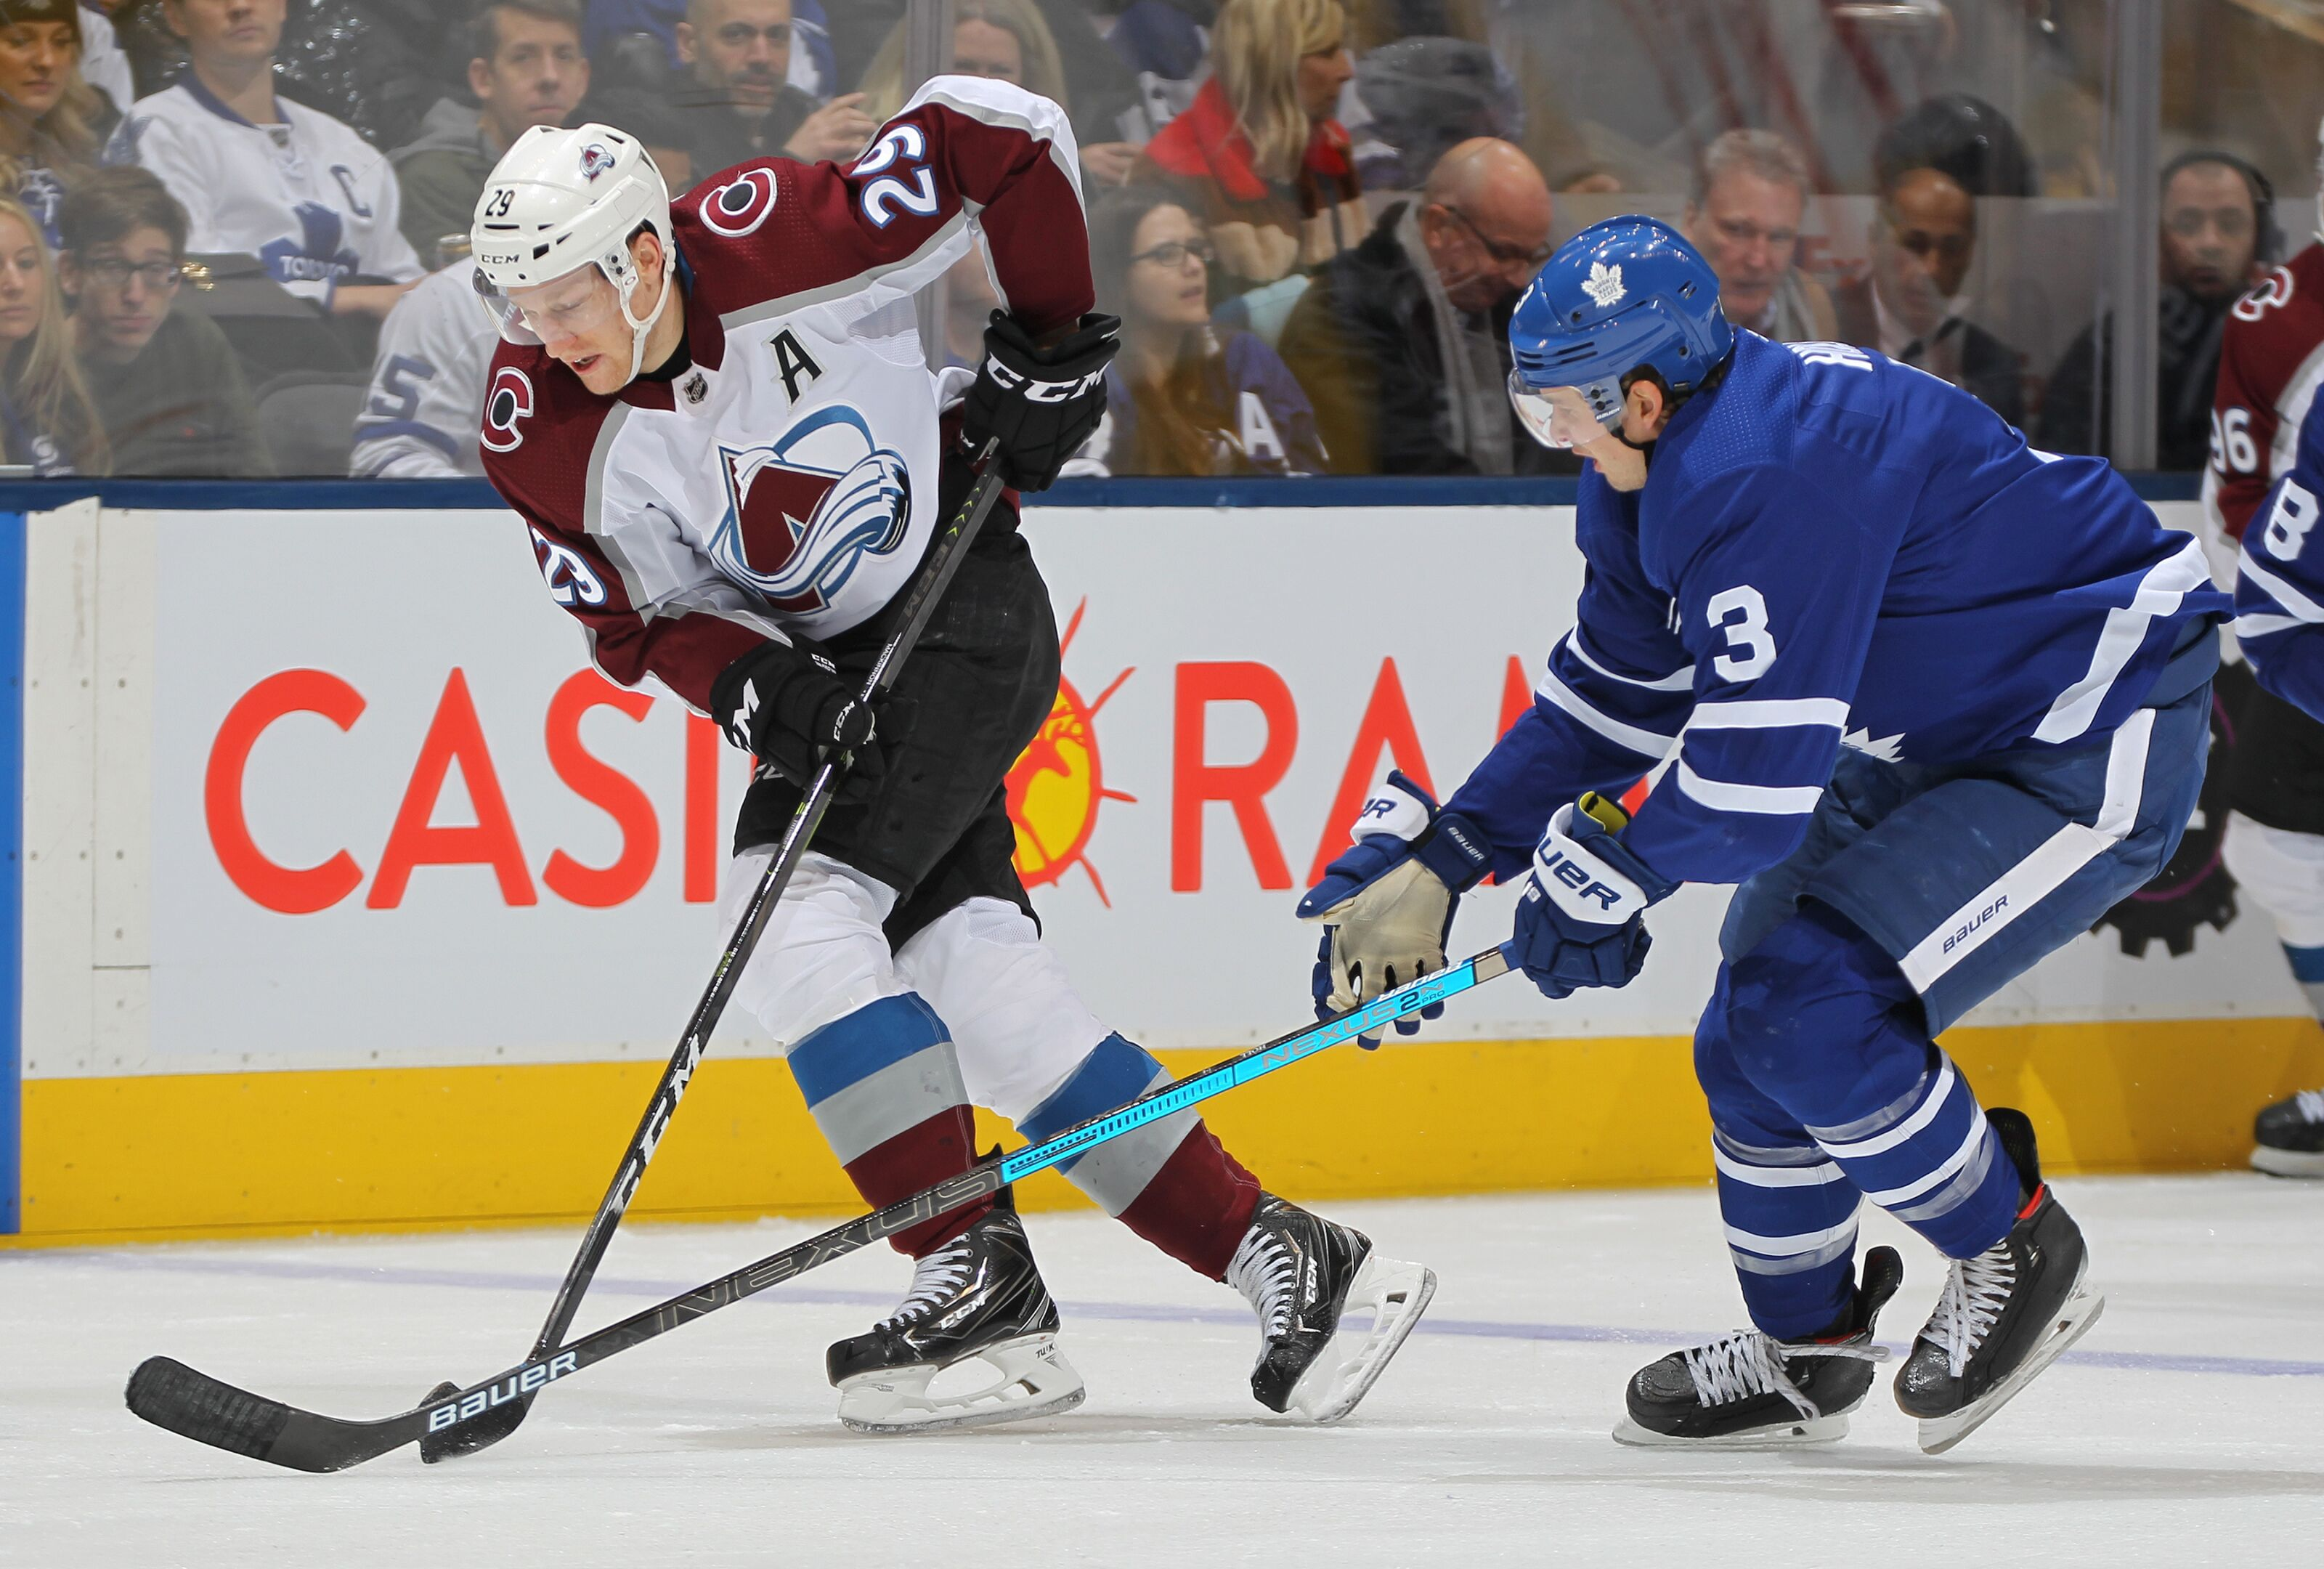 Toronto Maple Leafs: Don't get worked up about Nathan MacKinnon's comments